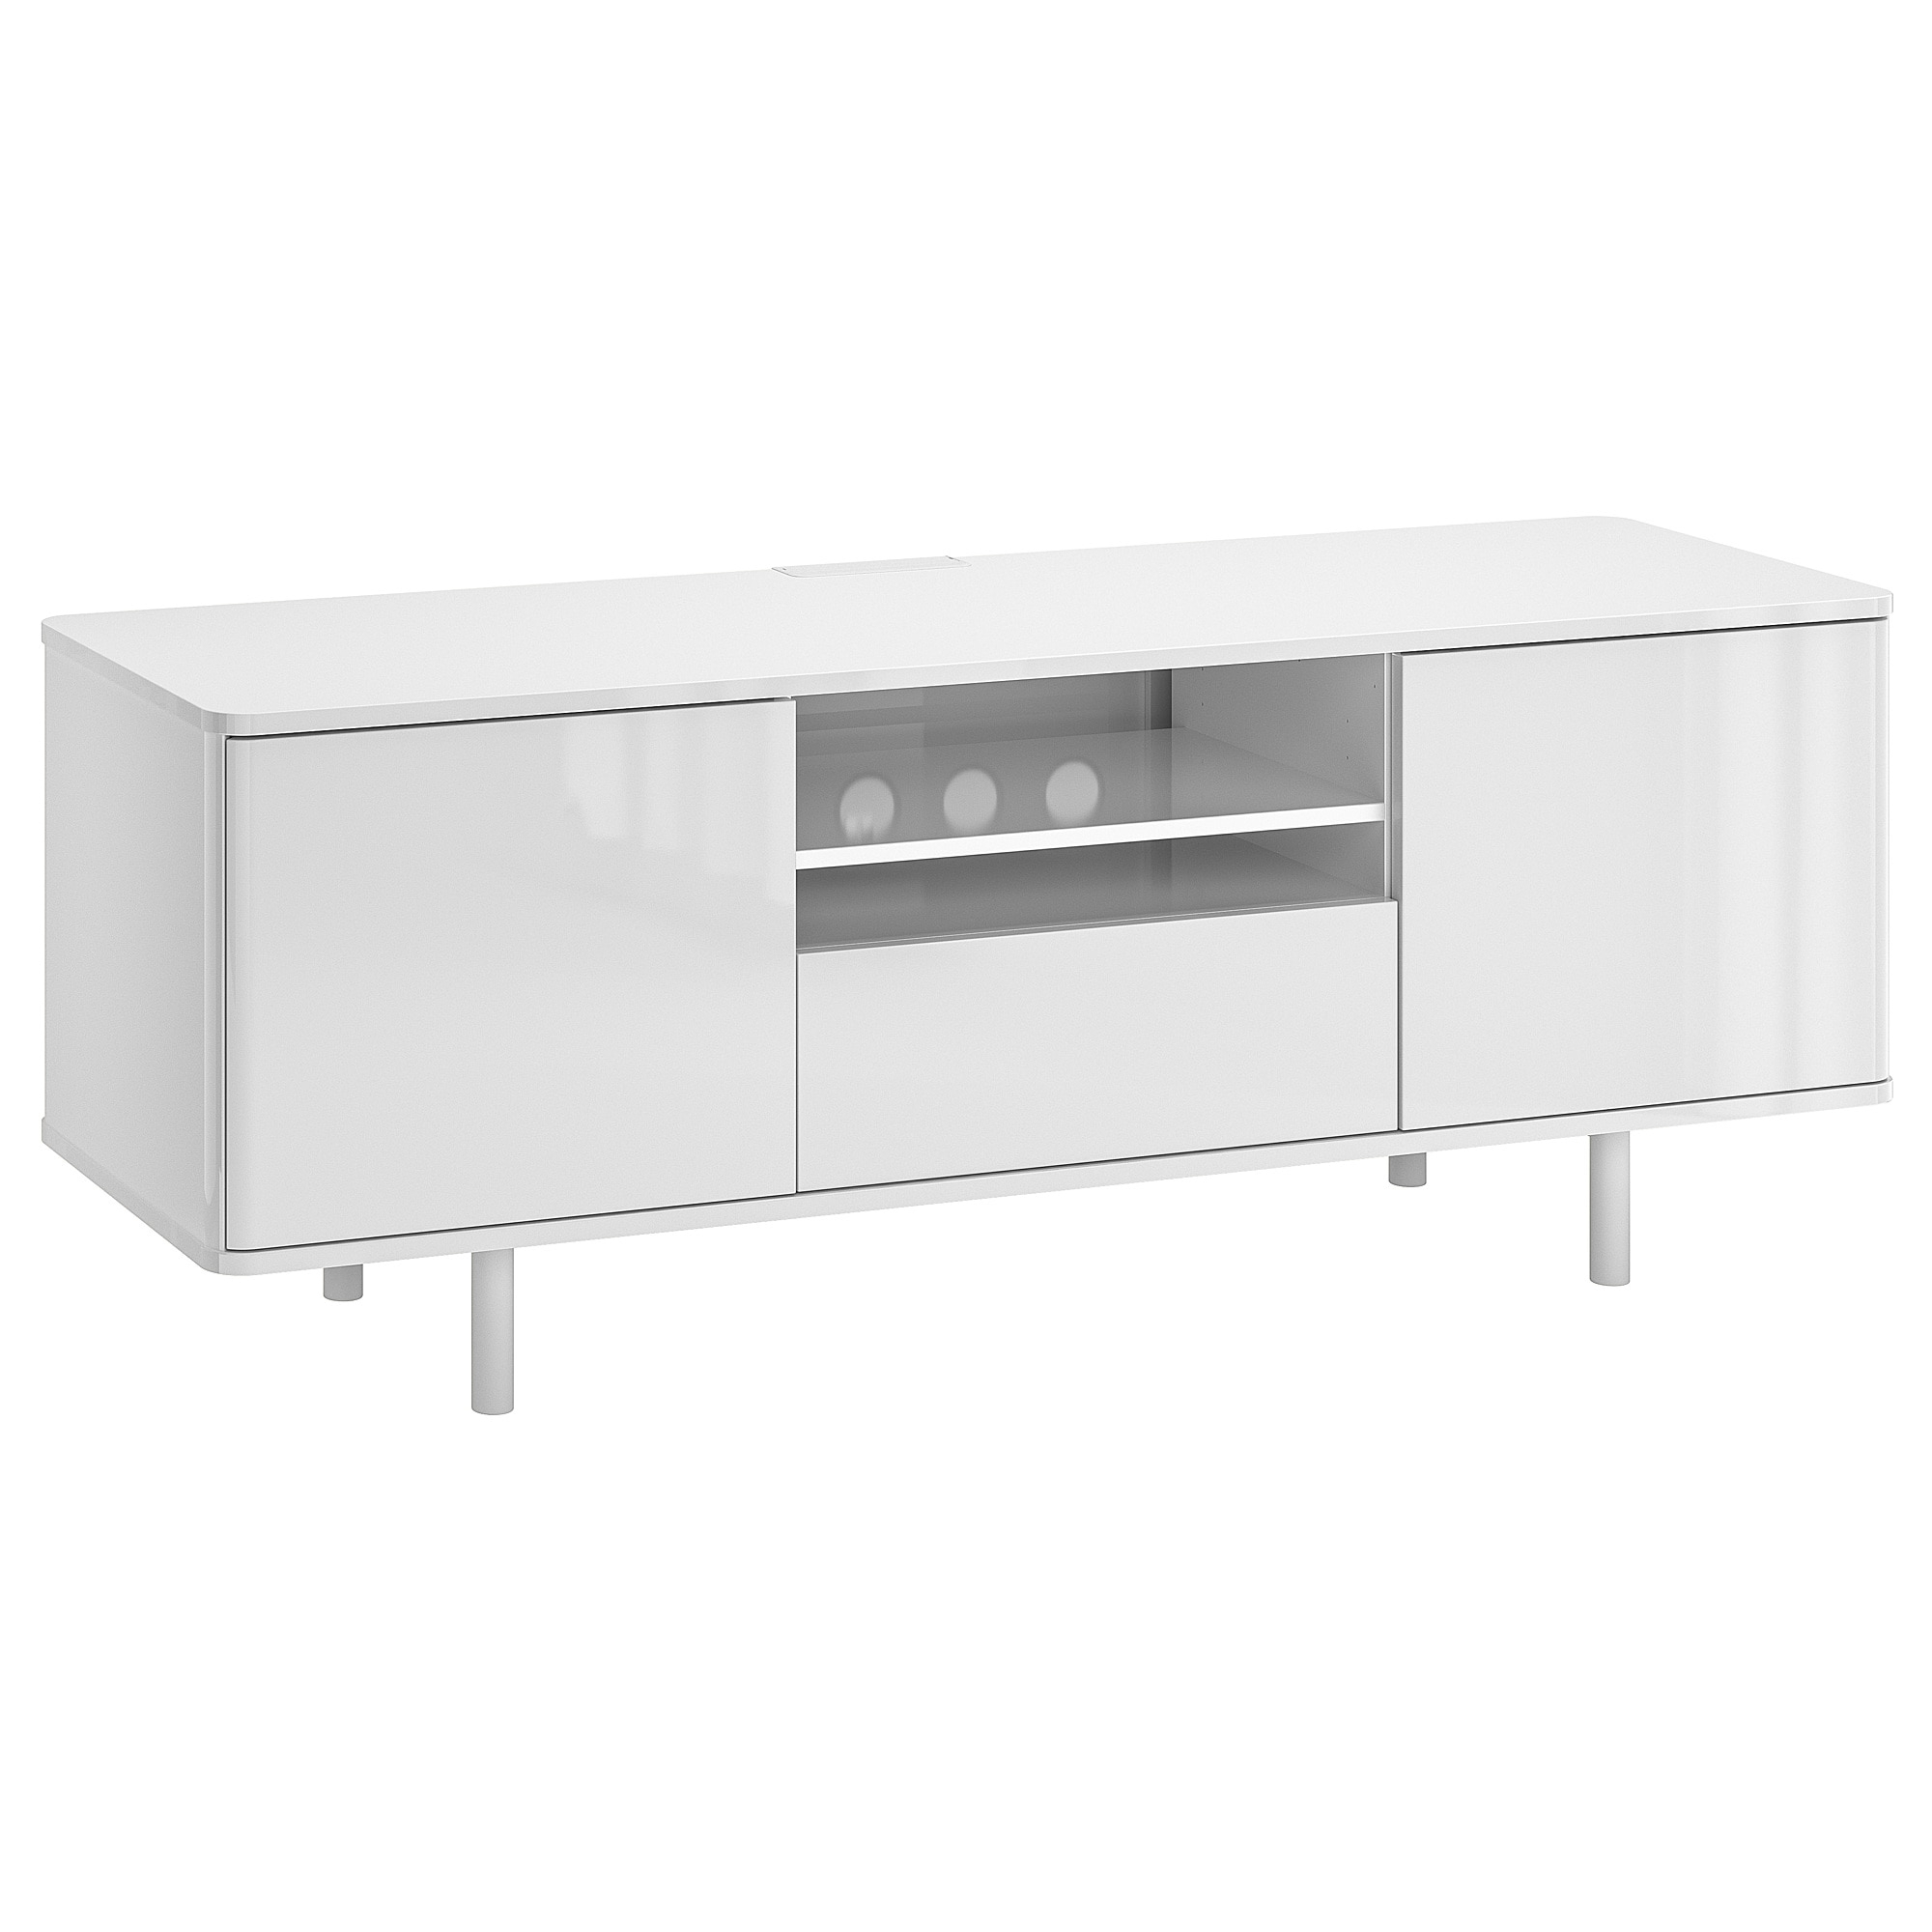 Latest White Gloss Tv Benches With Regard To Mostorp Tv Bench High Gloss White 160 X 47 X 60 Cm – Ikea (View 8 of 20)